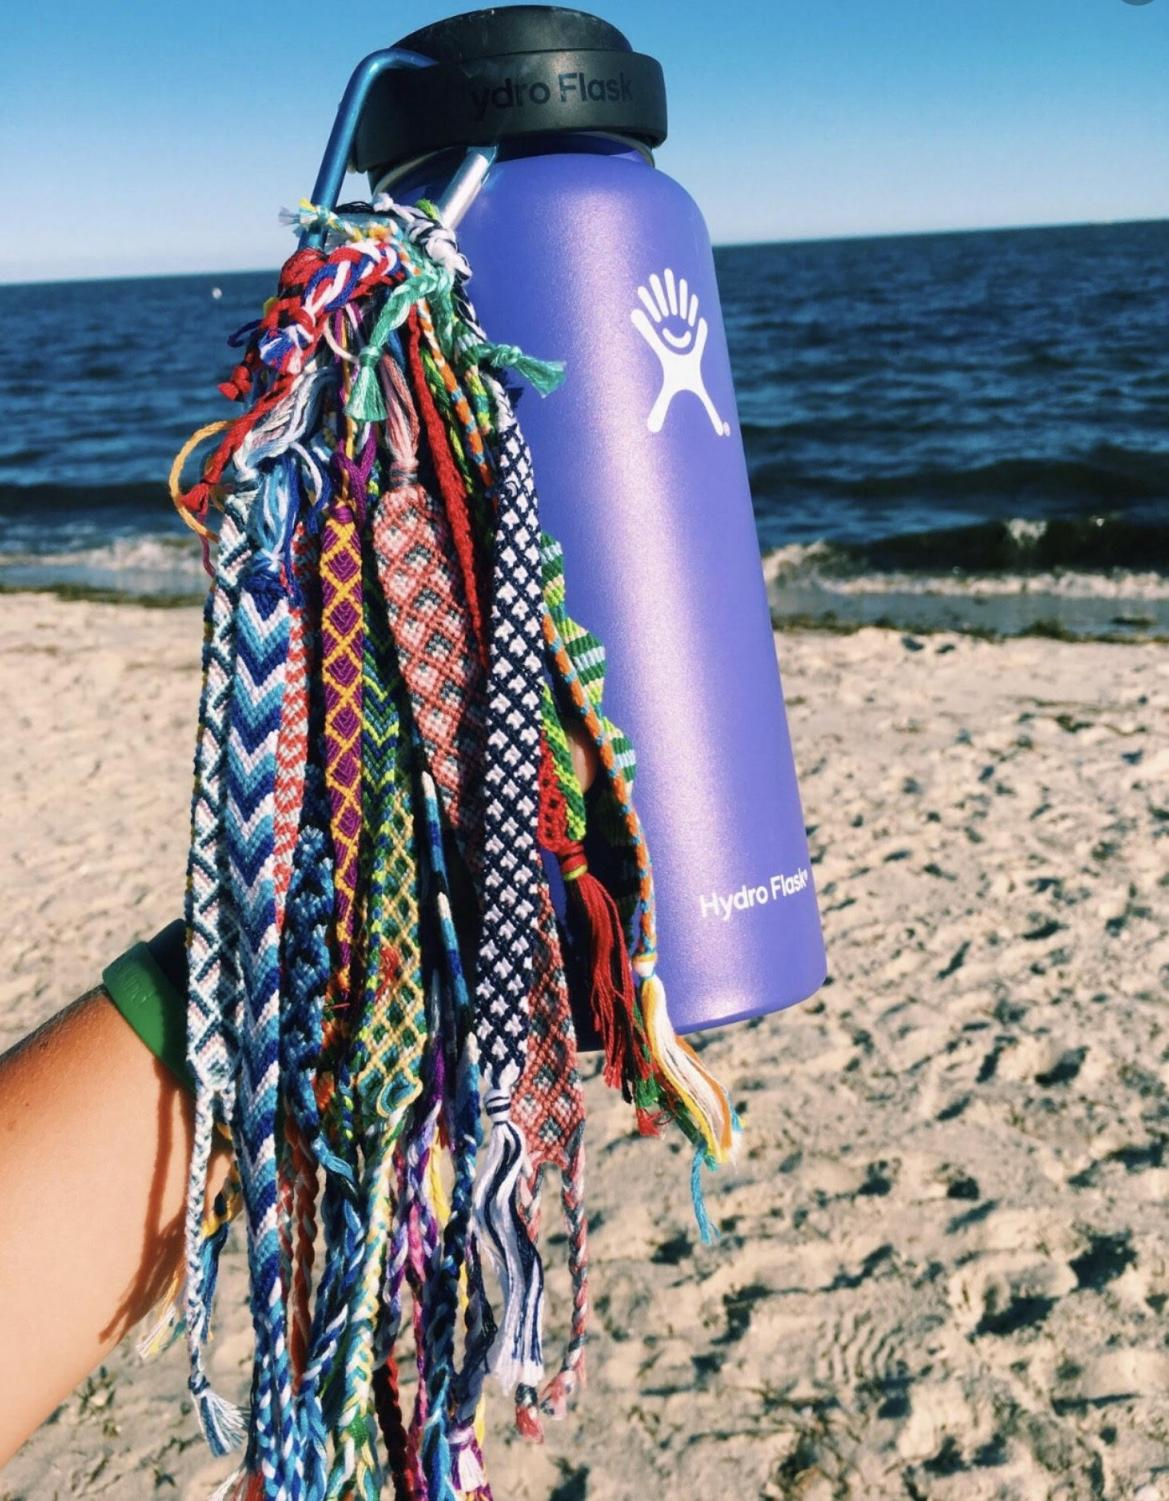 A Hydroflask with friendship bracelets attached. Photo courtesy of Instagrammer @carolinenieto